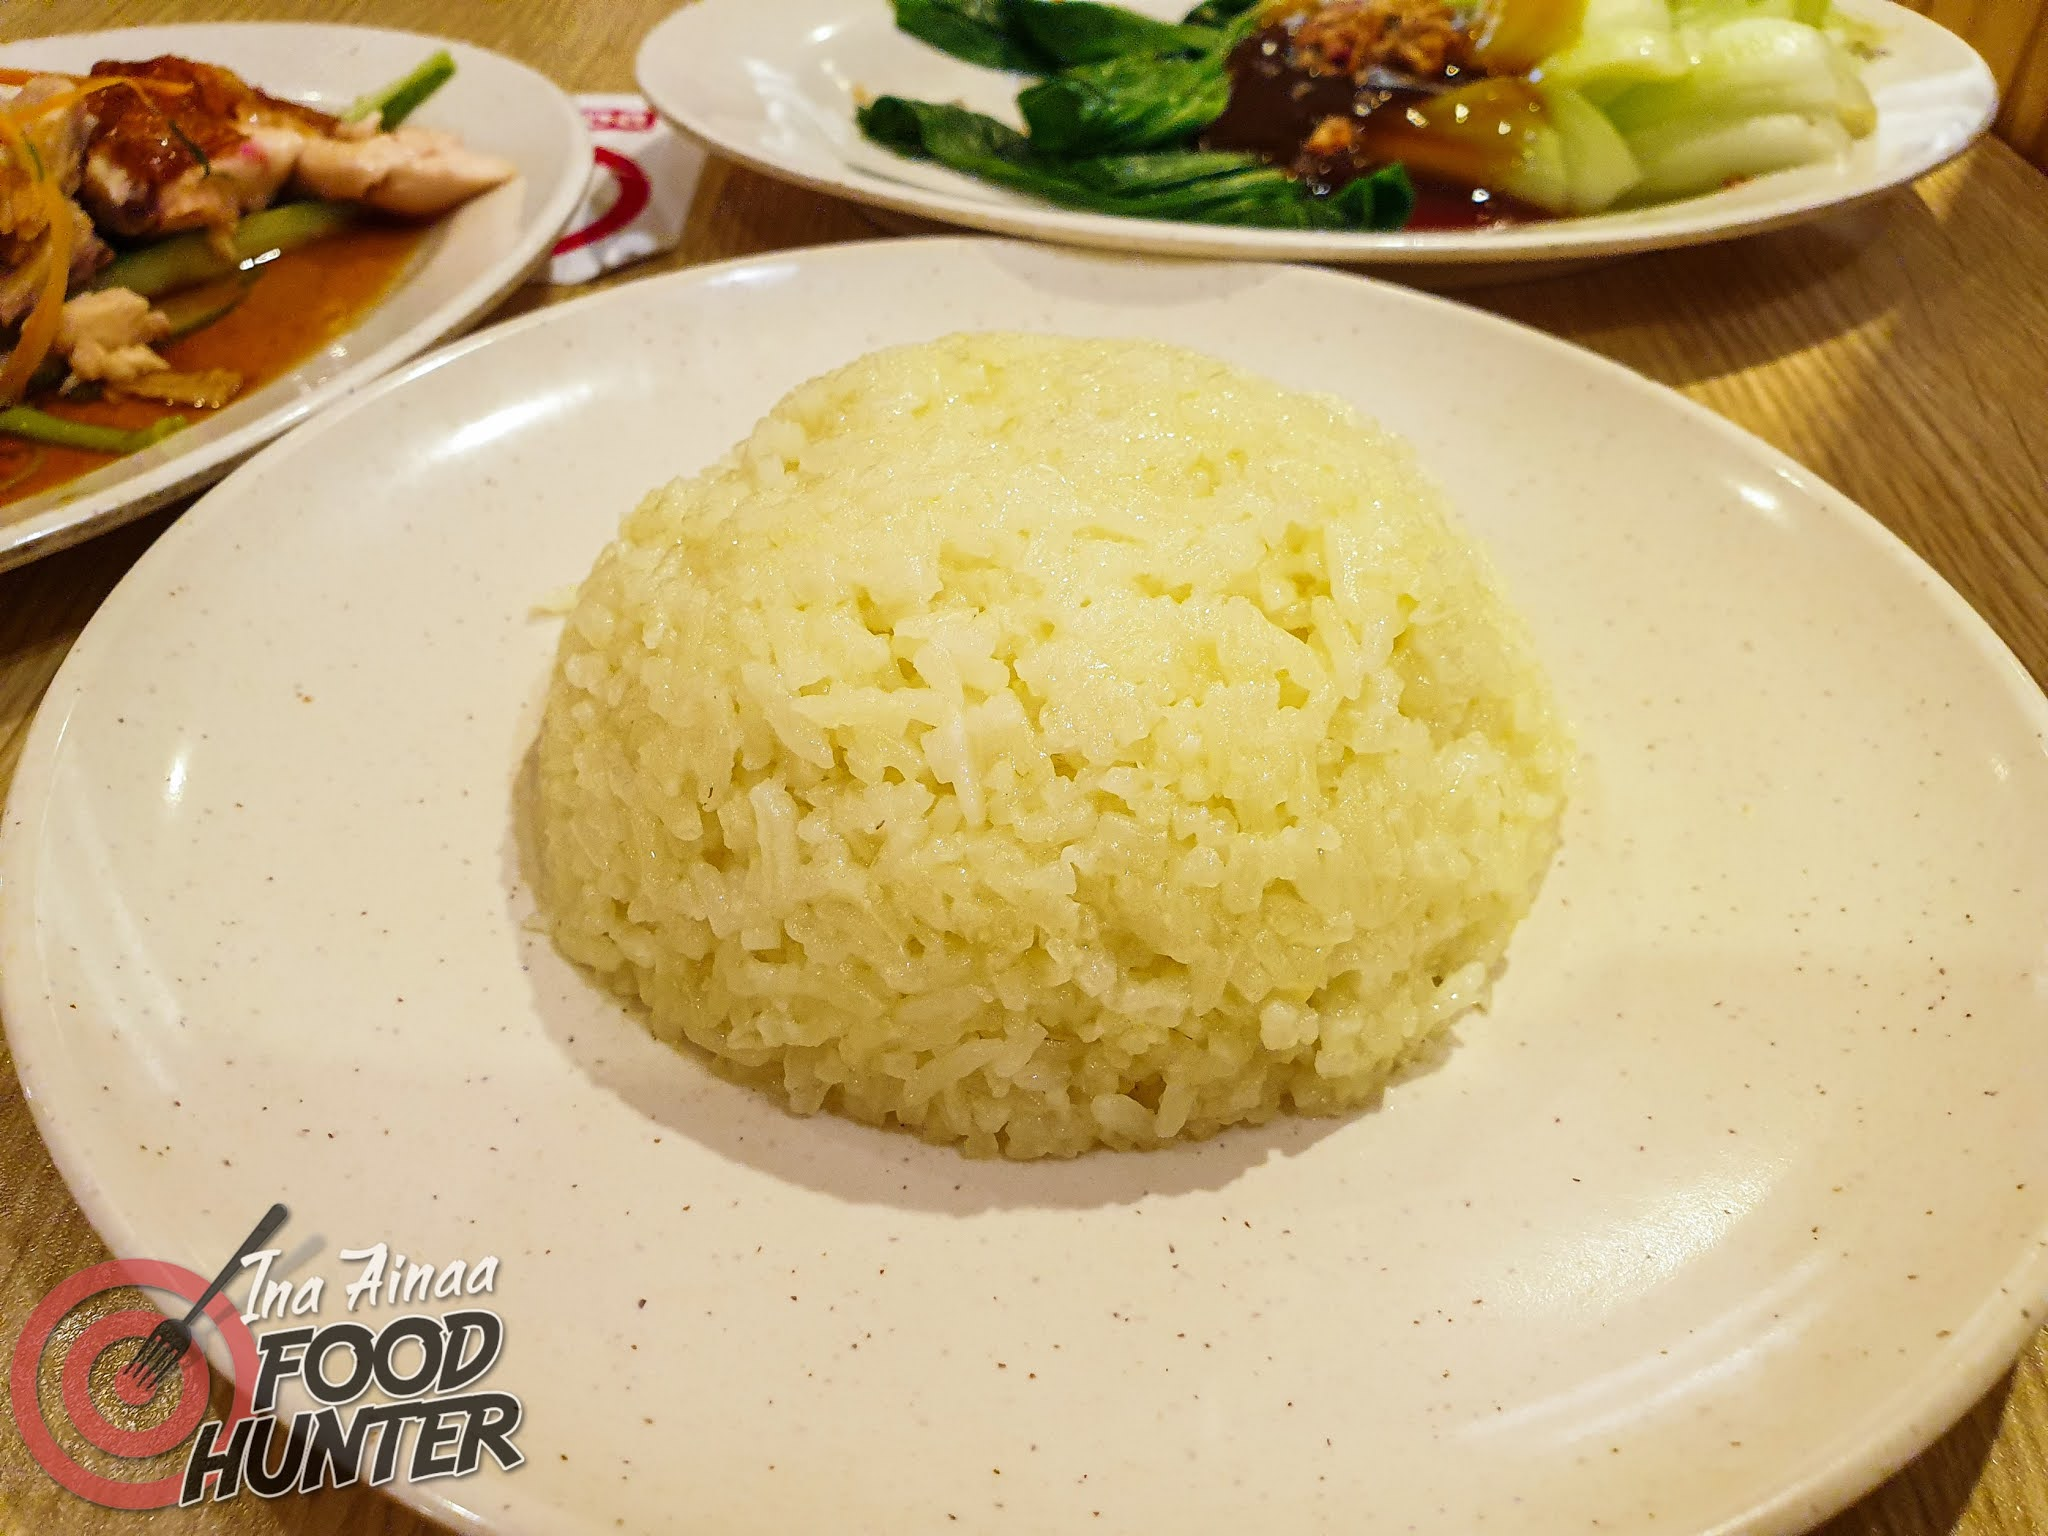 GRILLED BUTTER CHICKEN TCRS - Hak Milik Ina Ainaa